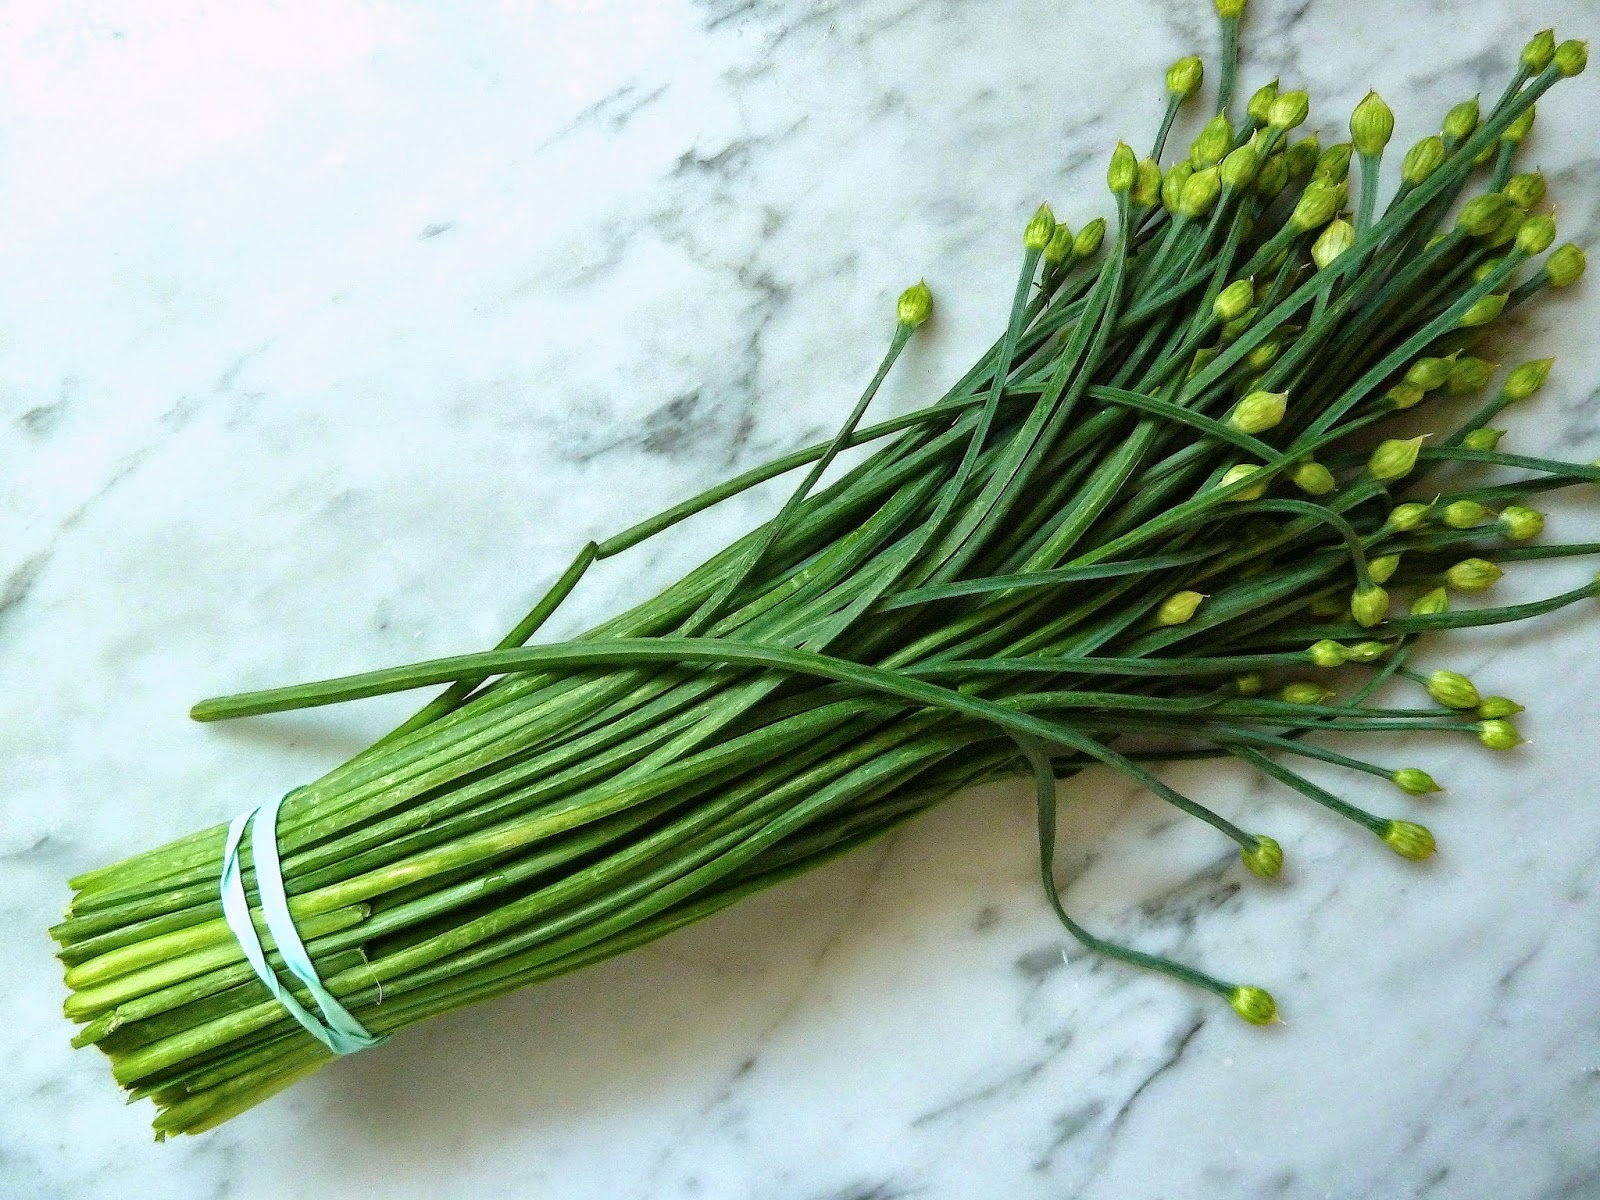 Benefits And Nutrition Of Chives (Allium Schoenoprasum) For Health